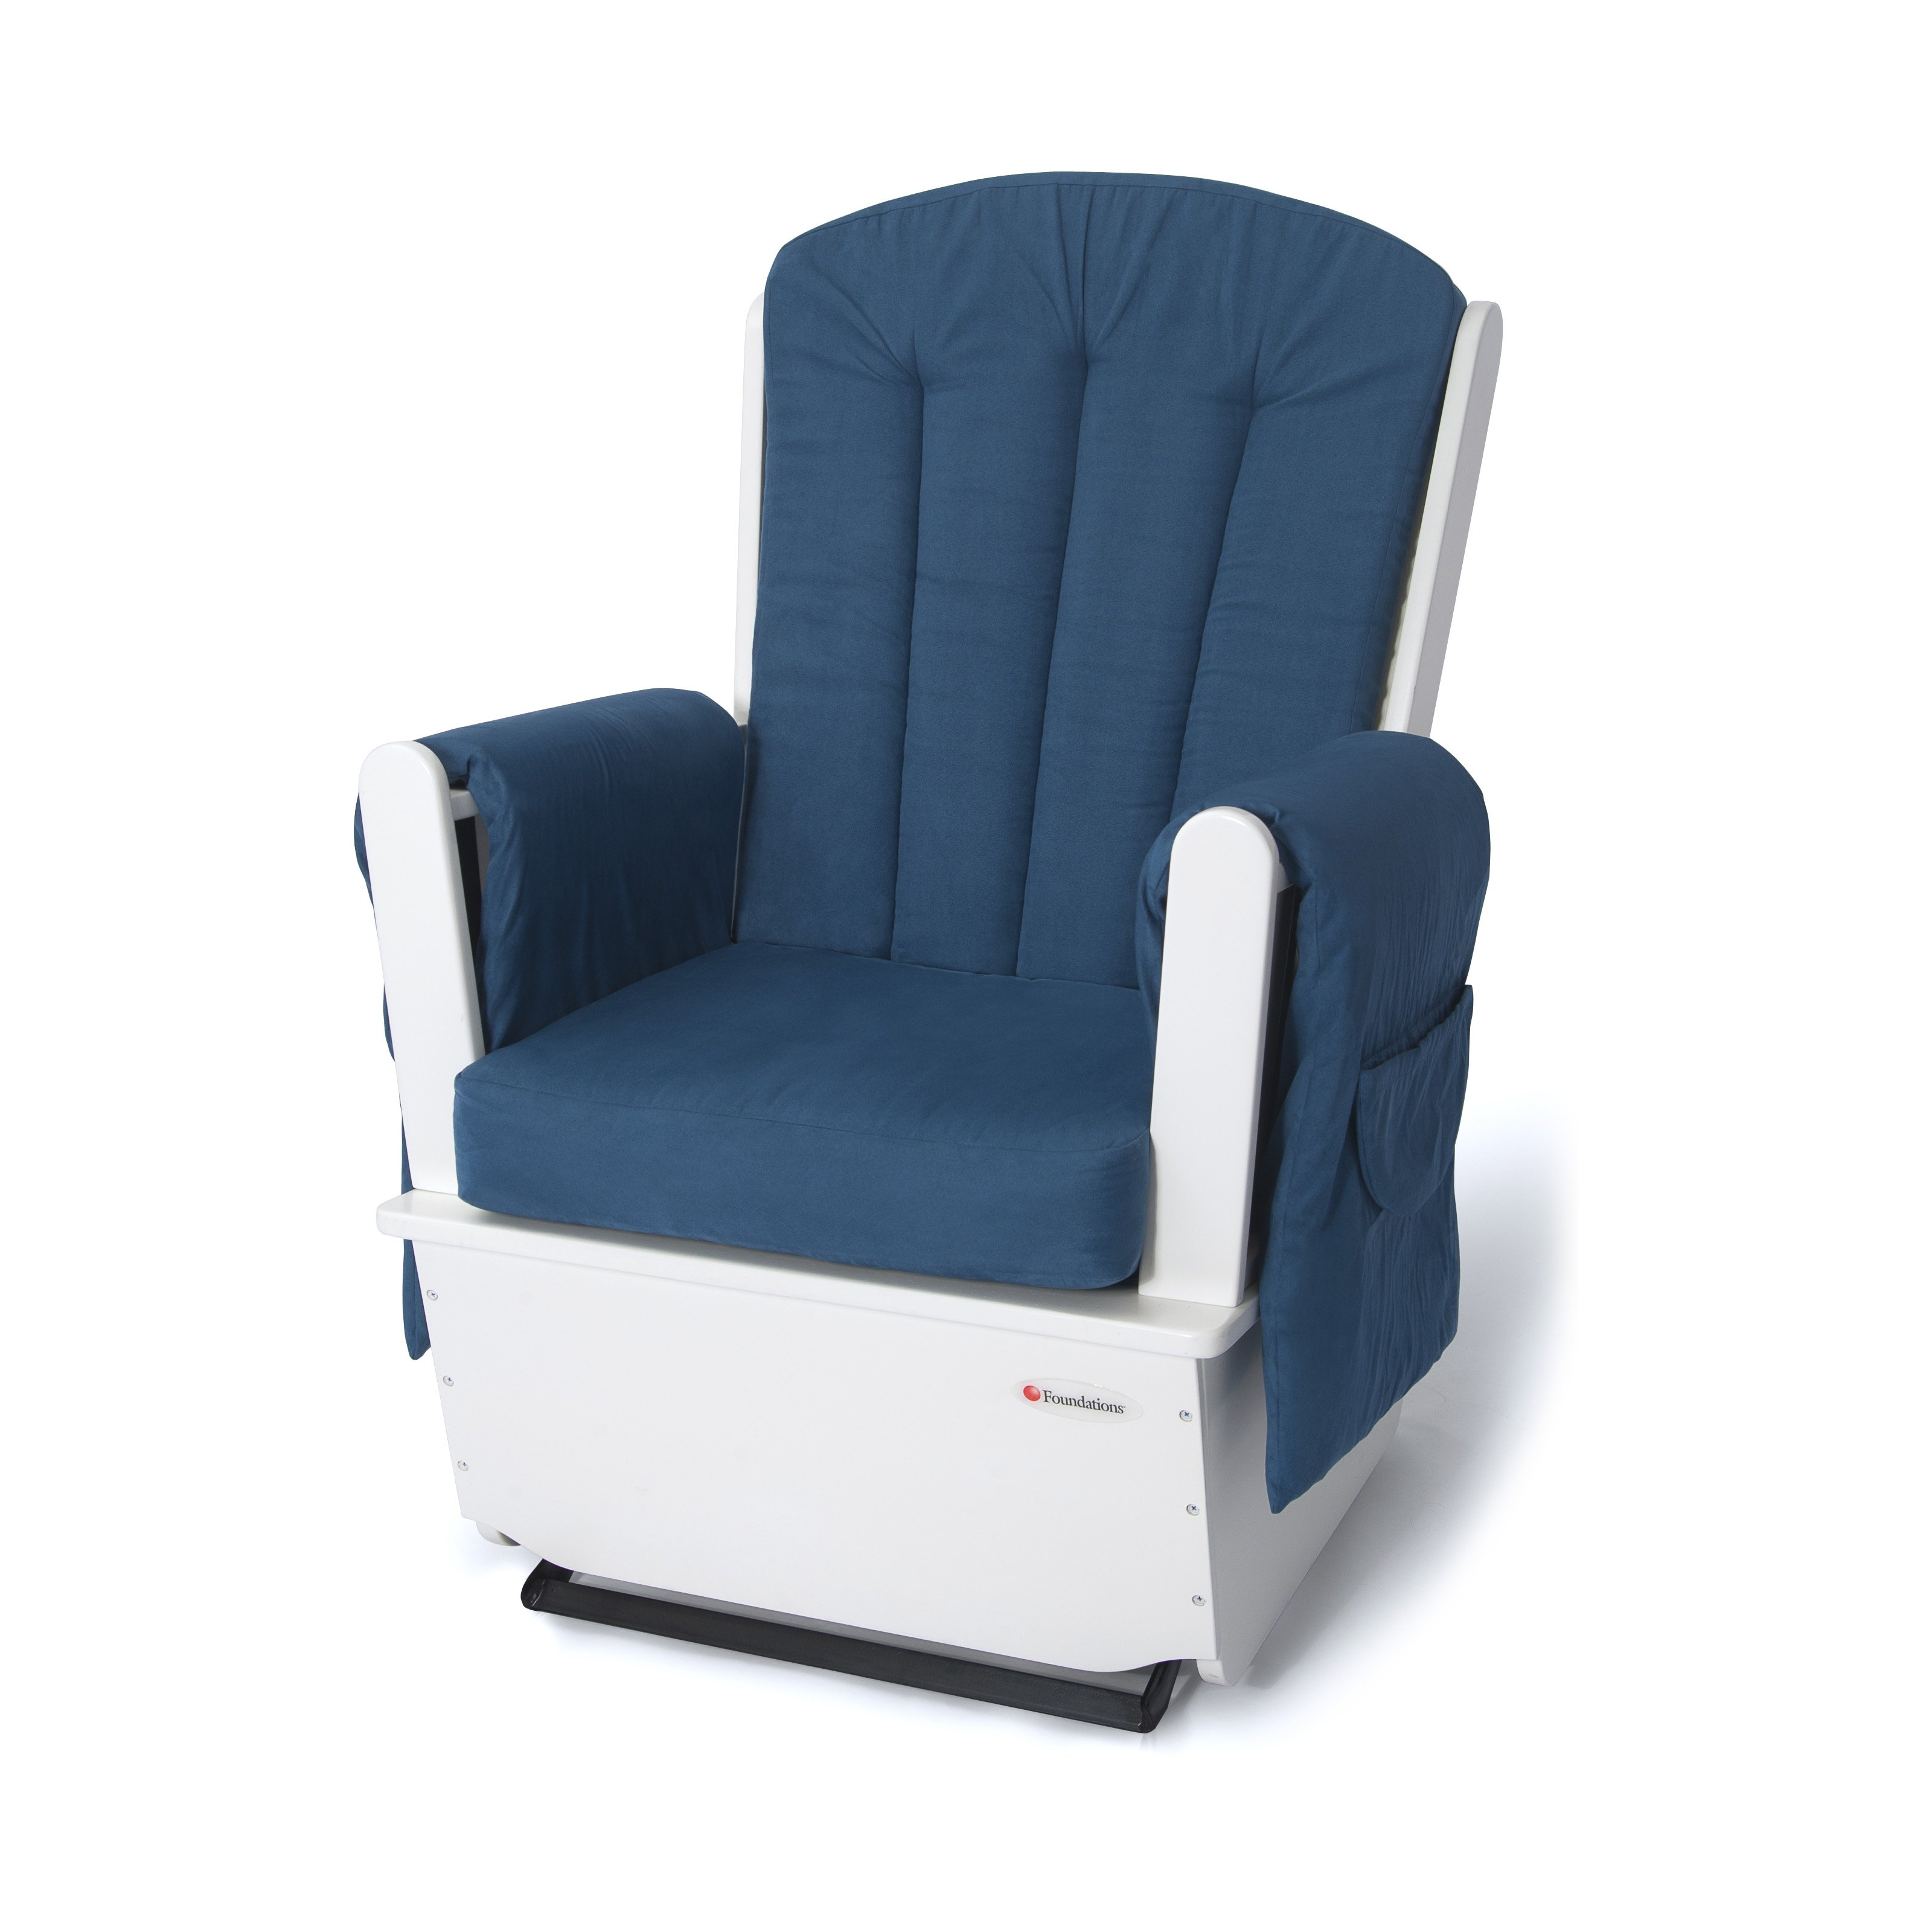 Foundations SafeRocker SS Swivel Glider Rocker White Blue by Foundations